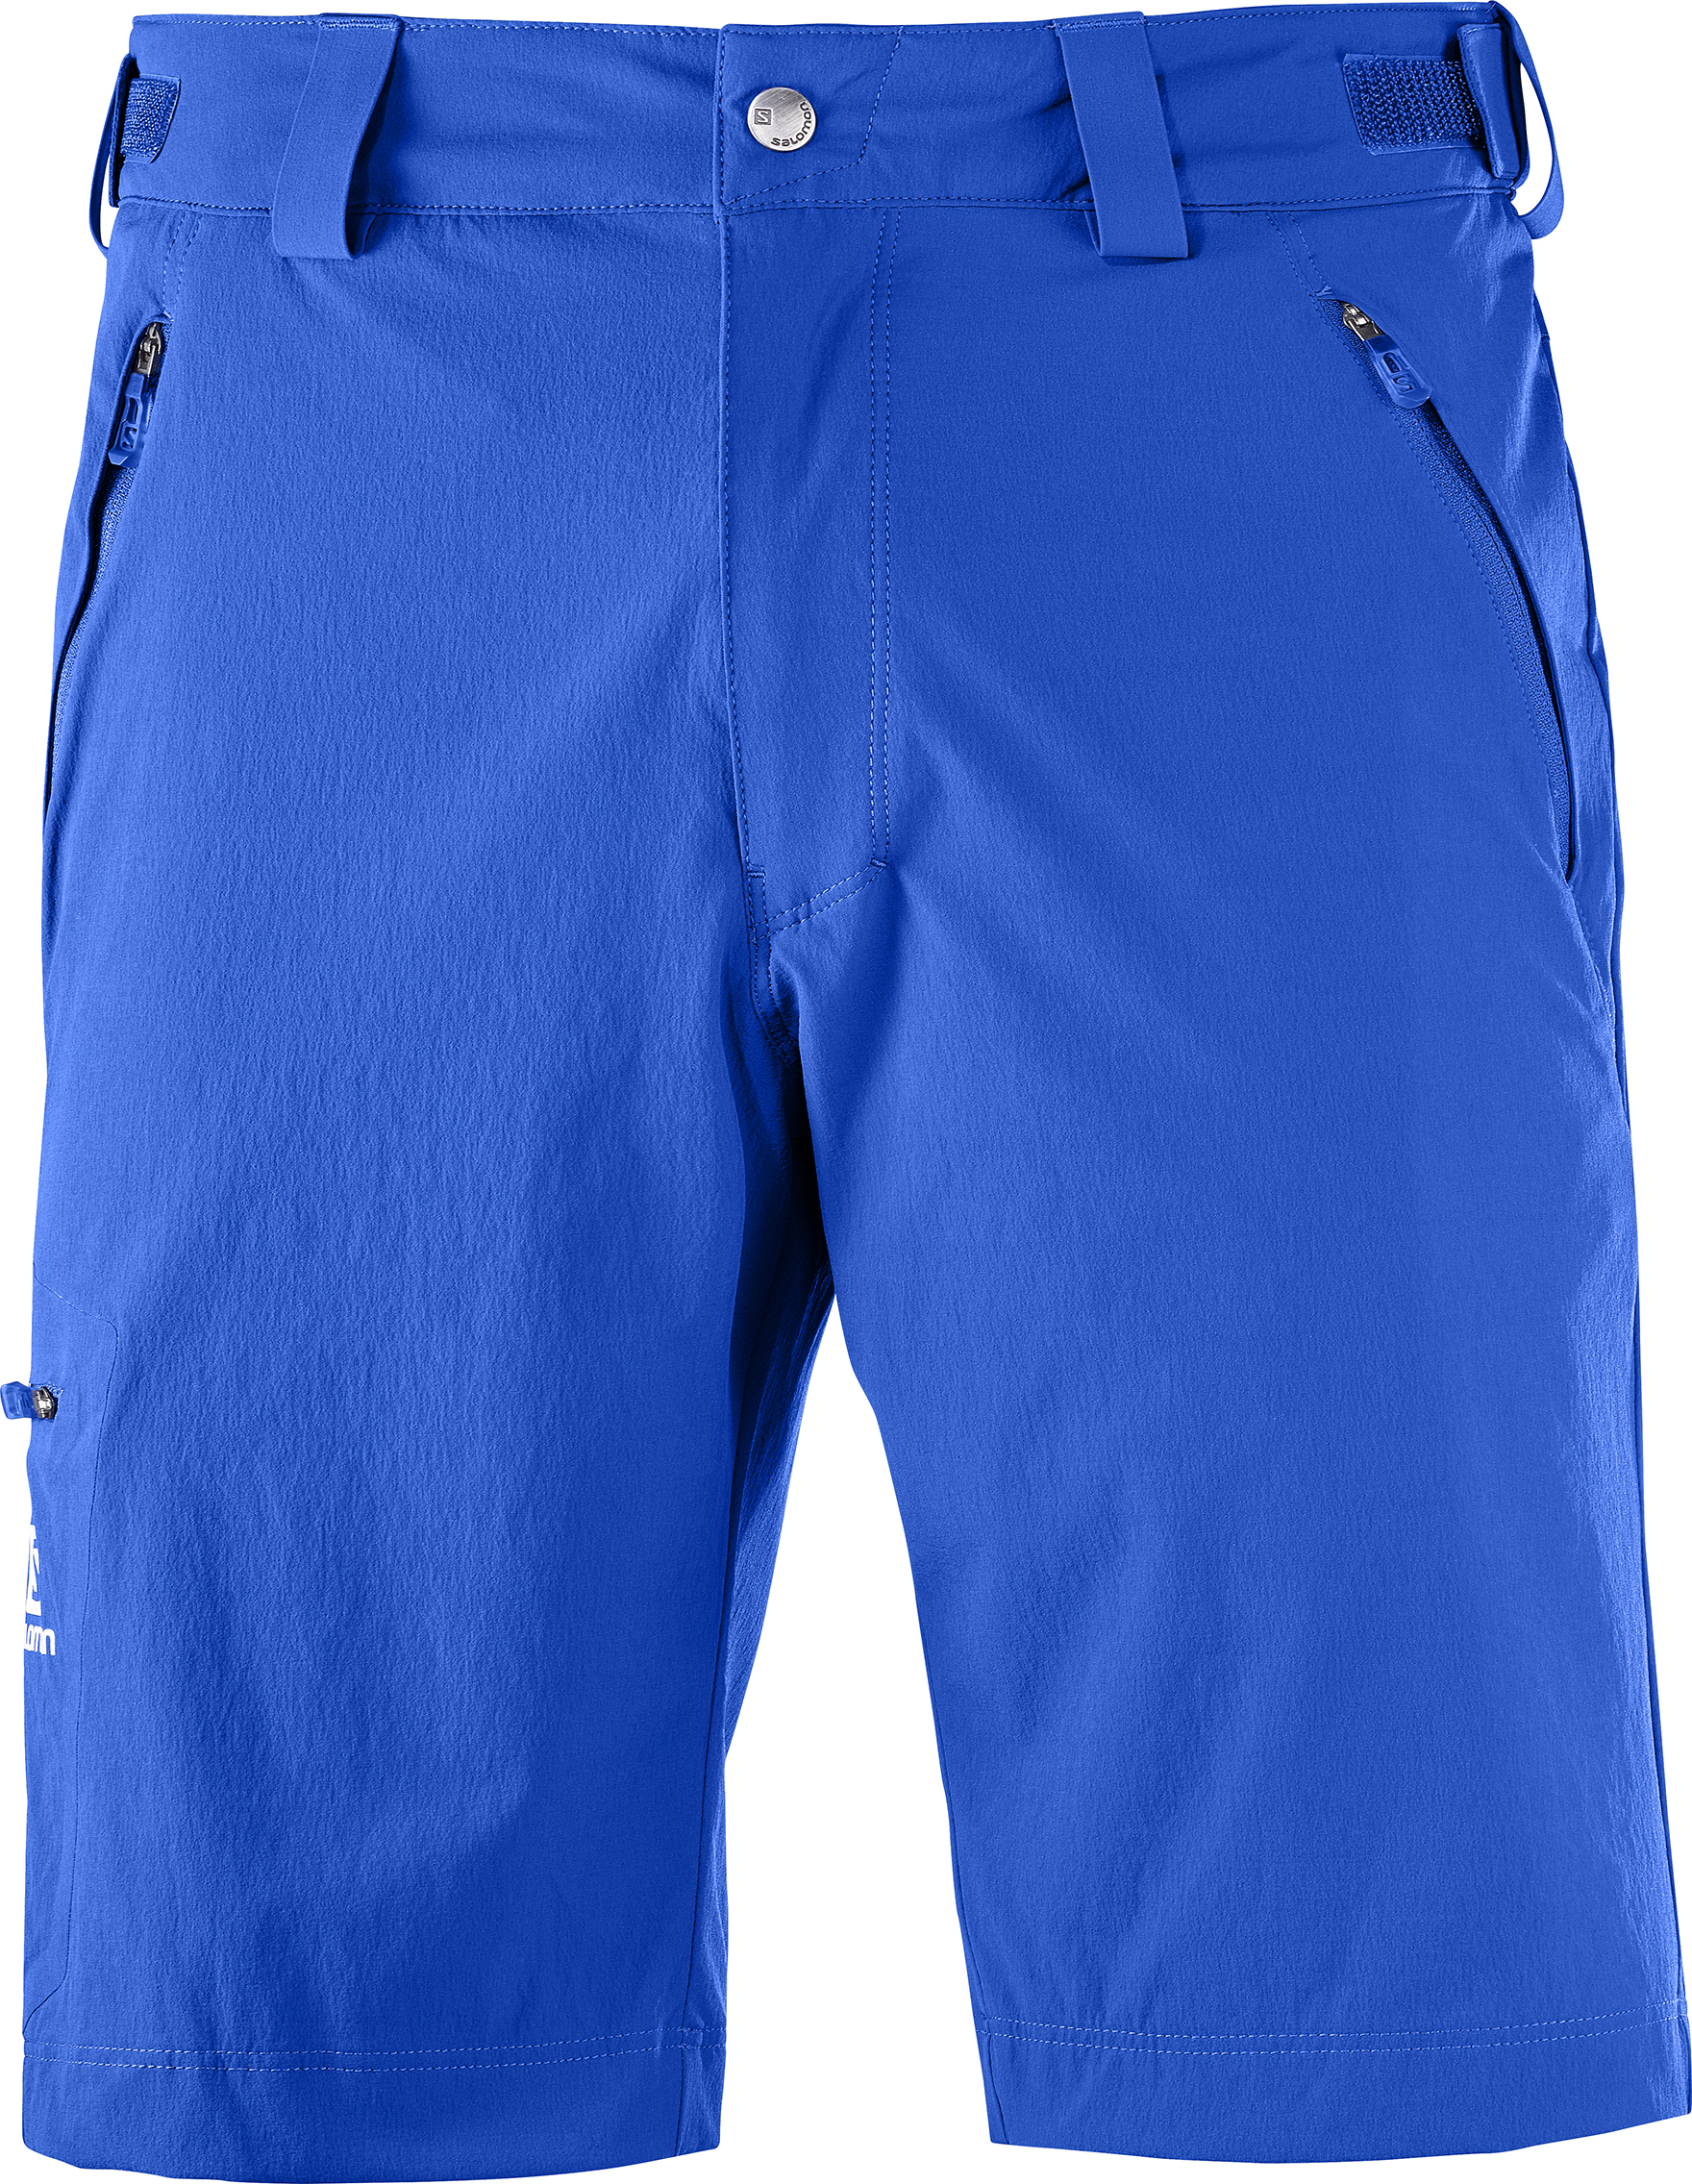 Salomon_wayfarershort_surfweb_outdoor